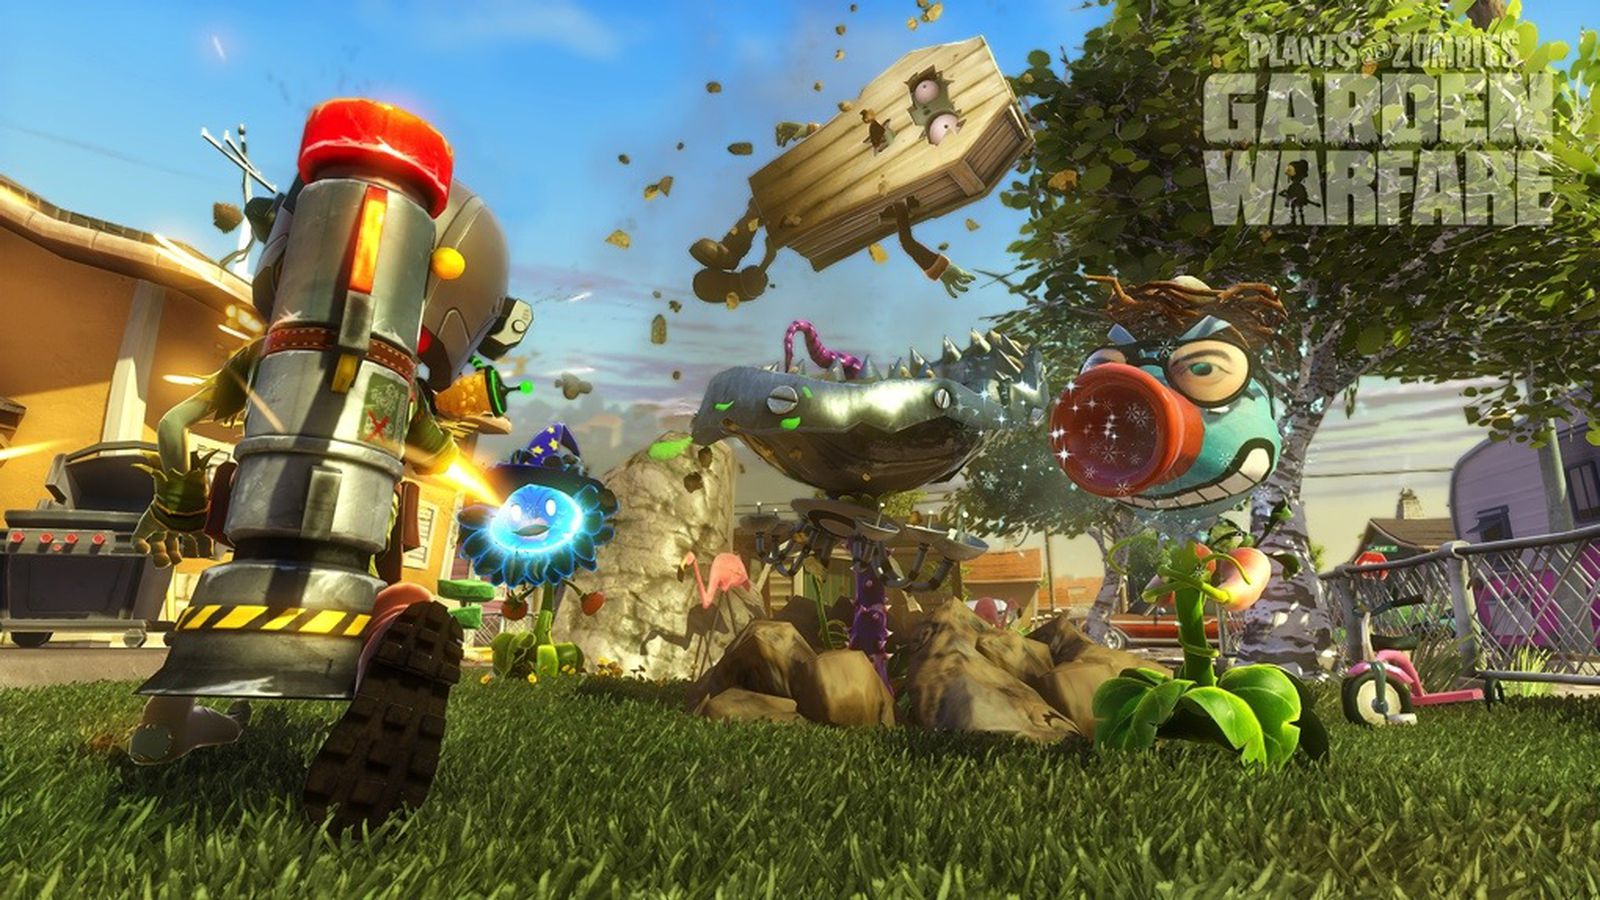 plants vs zombies garden warfare review perfectly prunable the verge - Plants Vs Zombies Garden Warfare Xbox 360